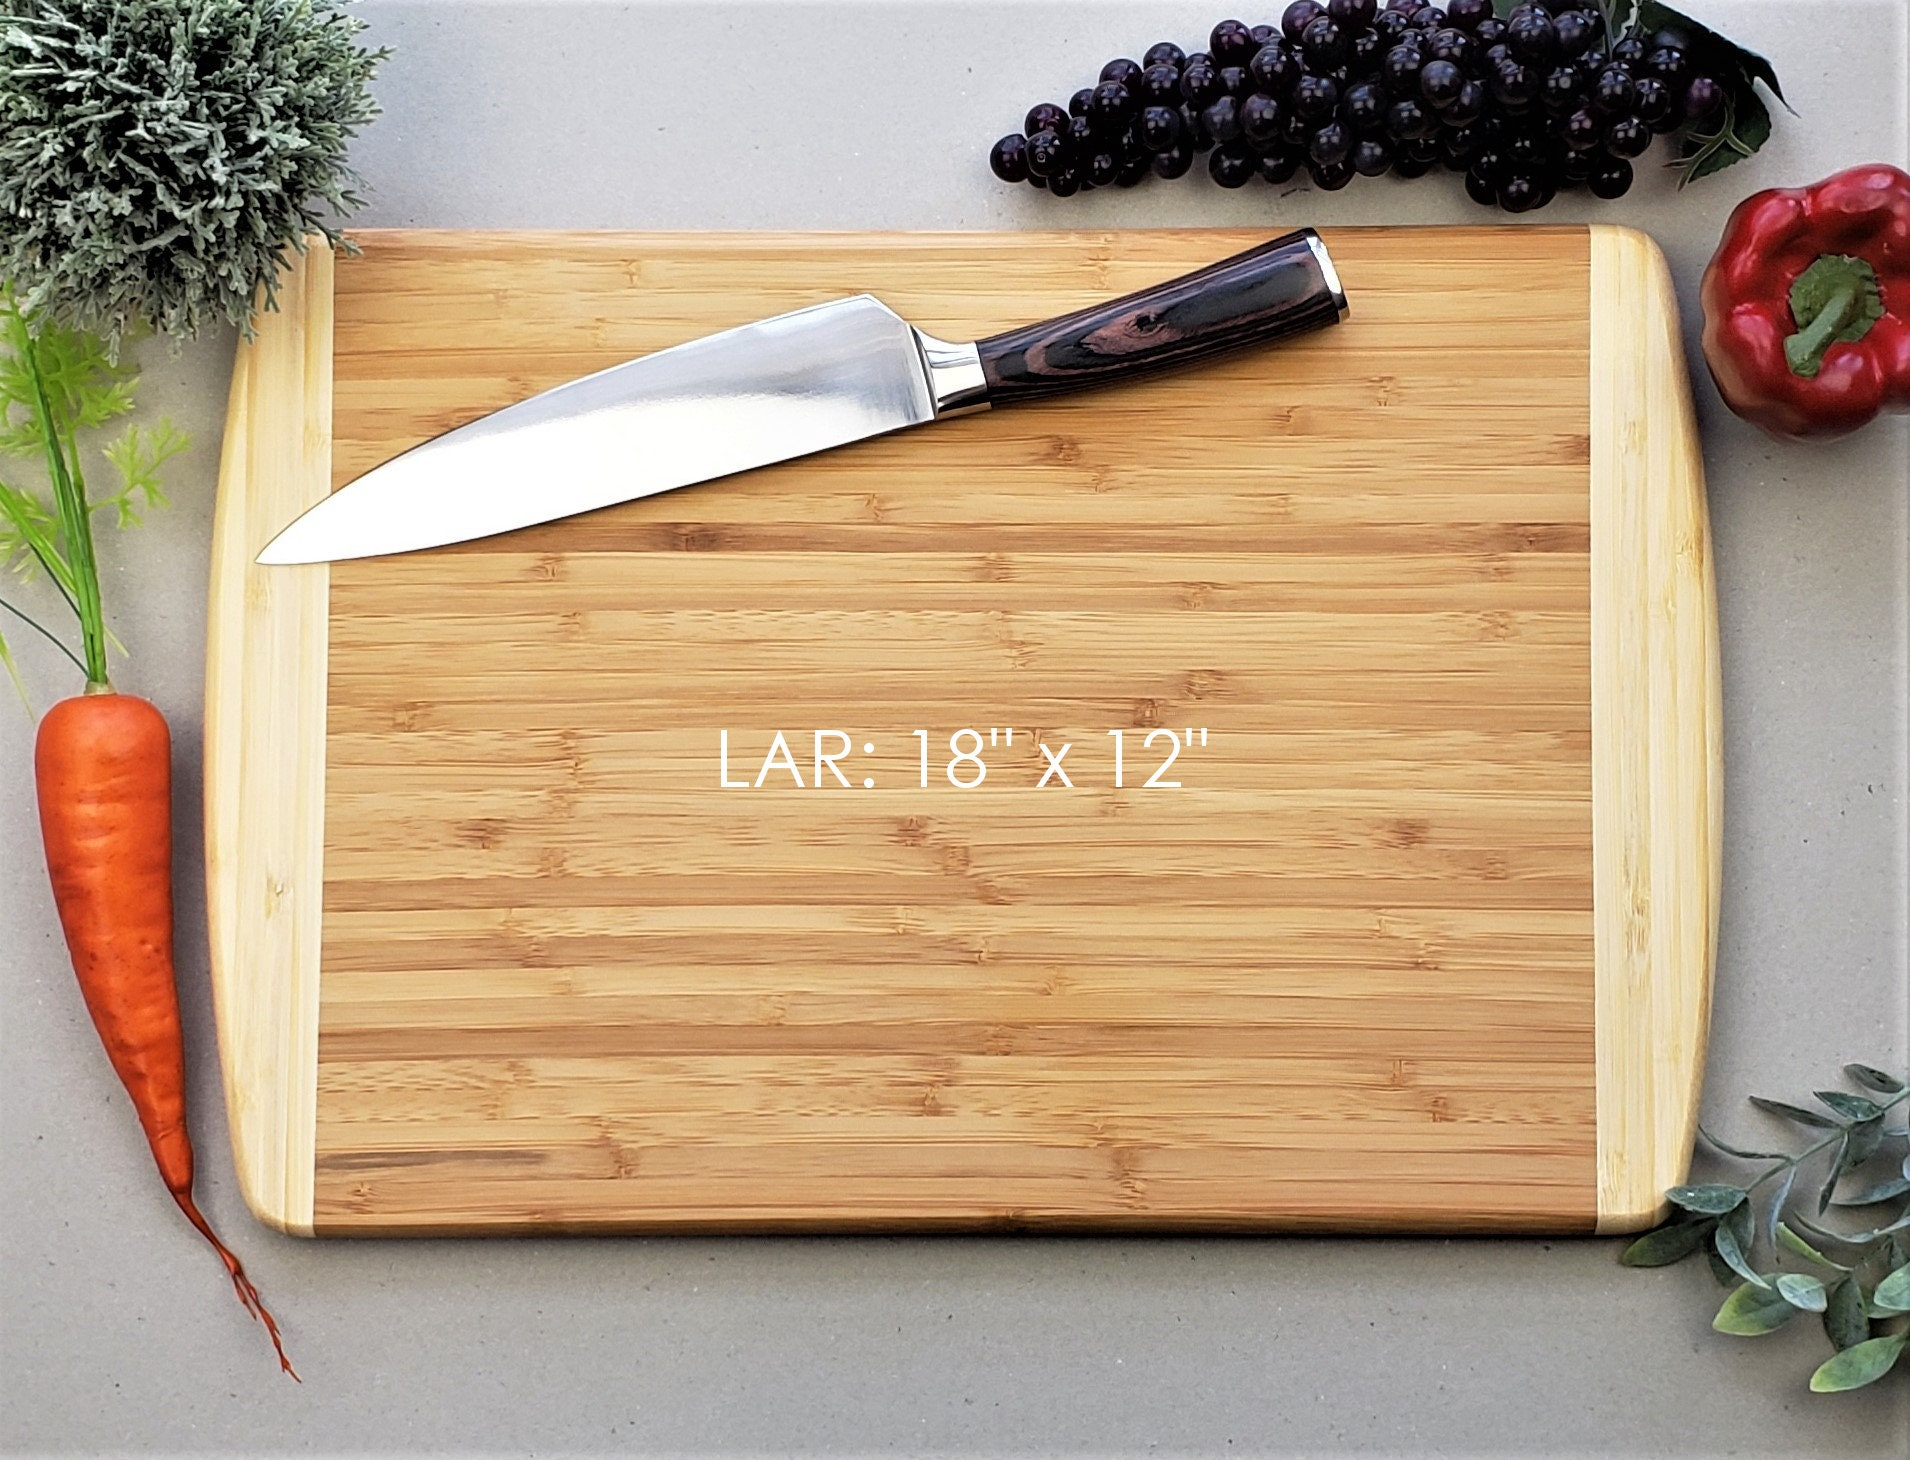 Cutting Boards Mats Sets Gifts Ideas For Mom Housewarming Personalized Engraved Cutting Board Wedding Gift In The Kitchen Meemaw Is The Boss Mothers Day Ideas Anniversary Gifts Housewarming Gift Birthday Gift Home